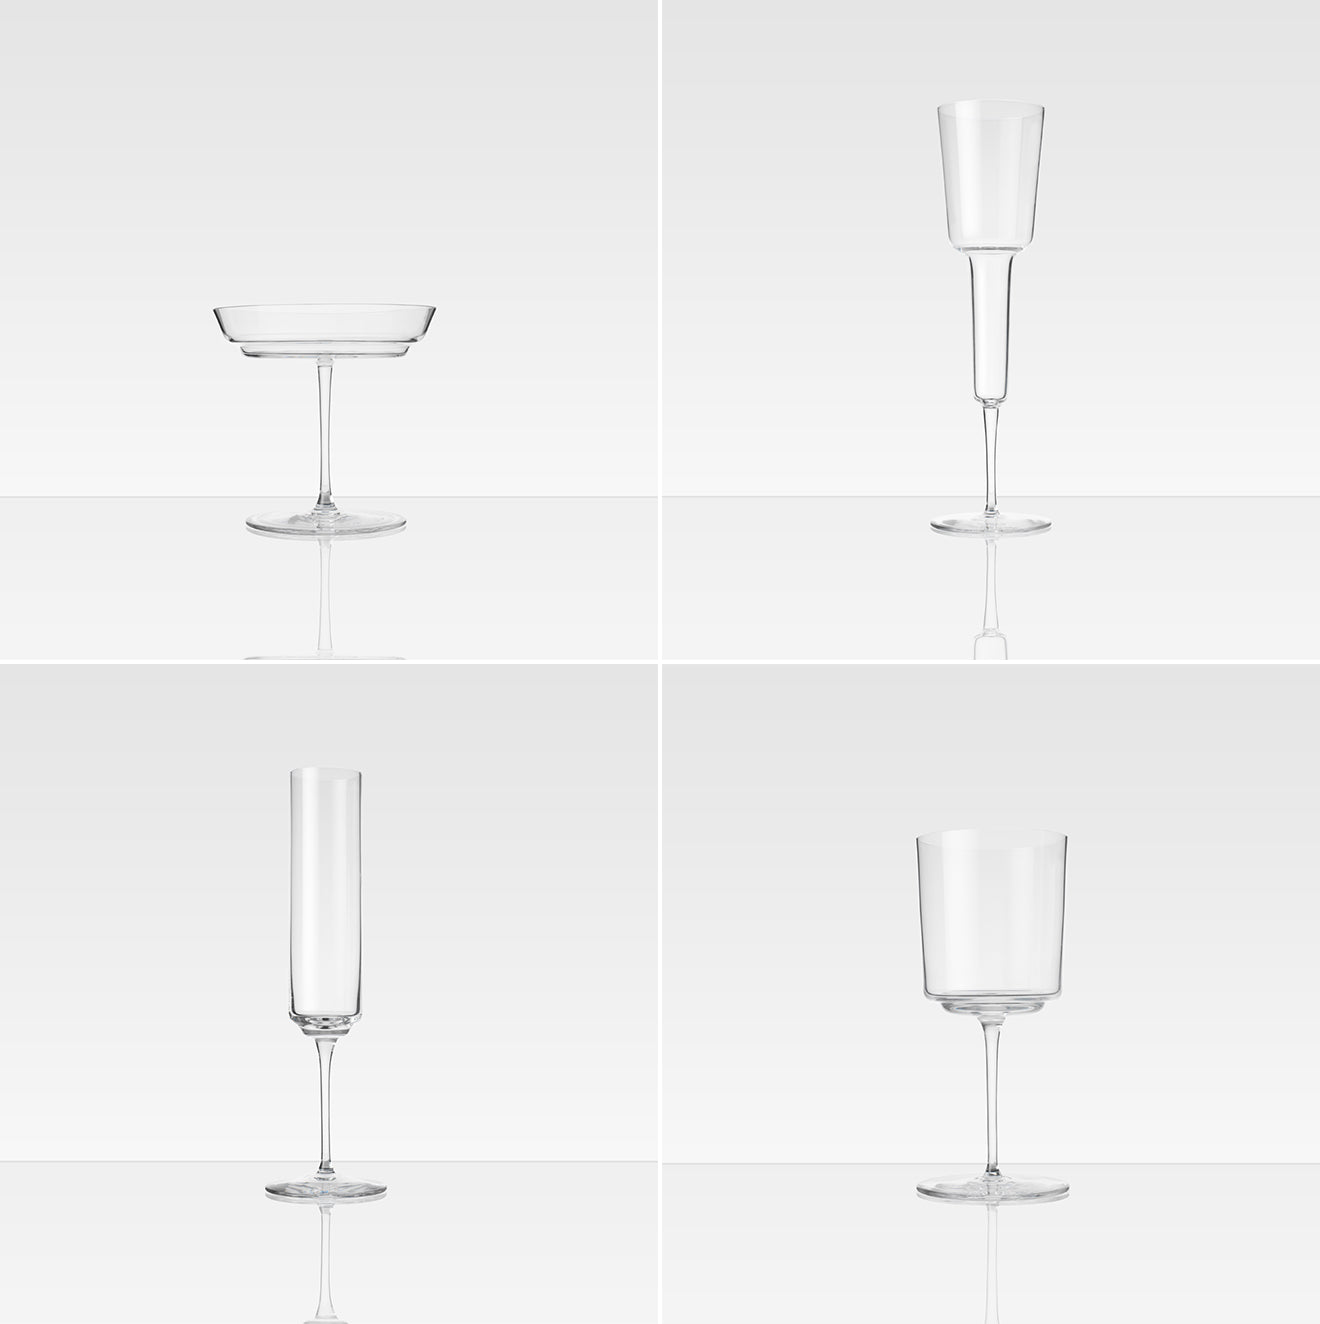 Michael Anastassiades Glassware collaboration with StudioILSE